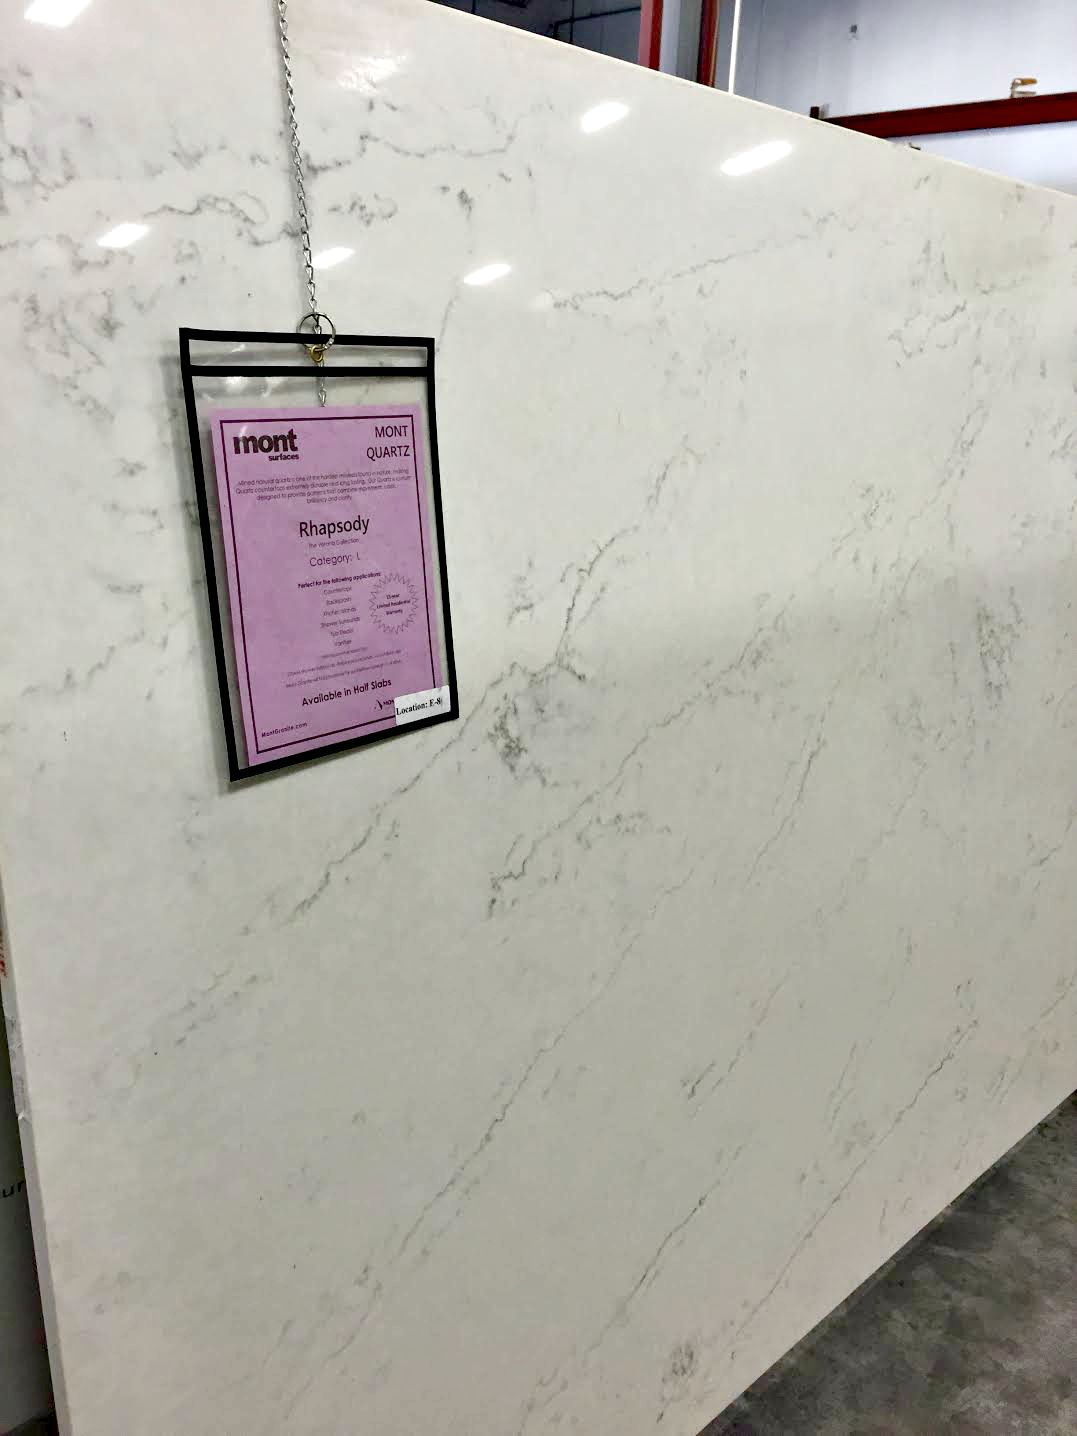 Super White Granite Kitchen Stone Counters That Look Like Marble And My Pick From Thrifty